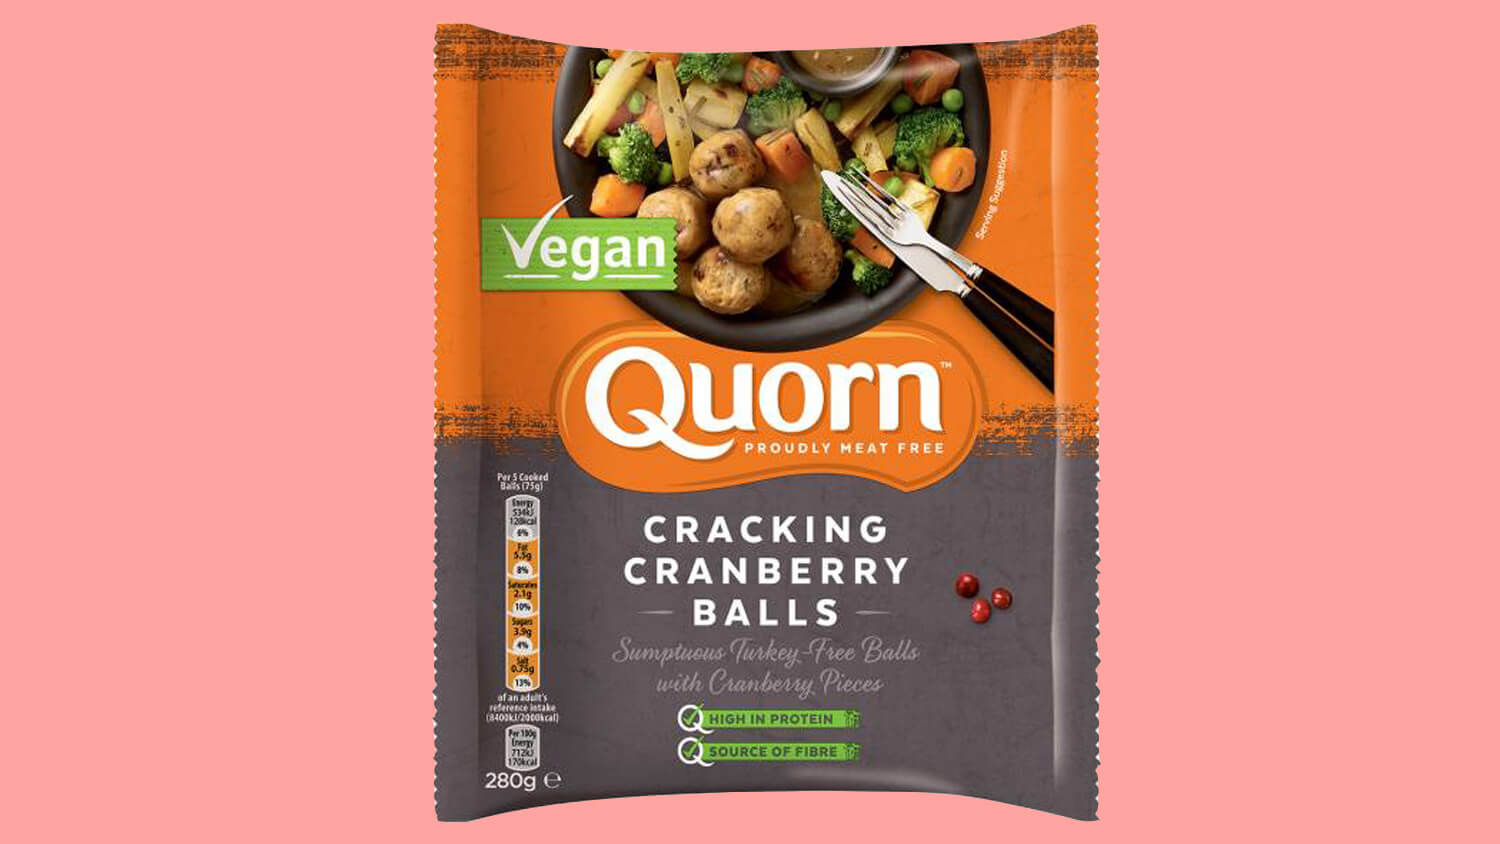 Vegetarian Meat Brand Quorn Launches Festive Vegan Turkey 'Cracking' Cranberry Balls